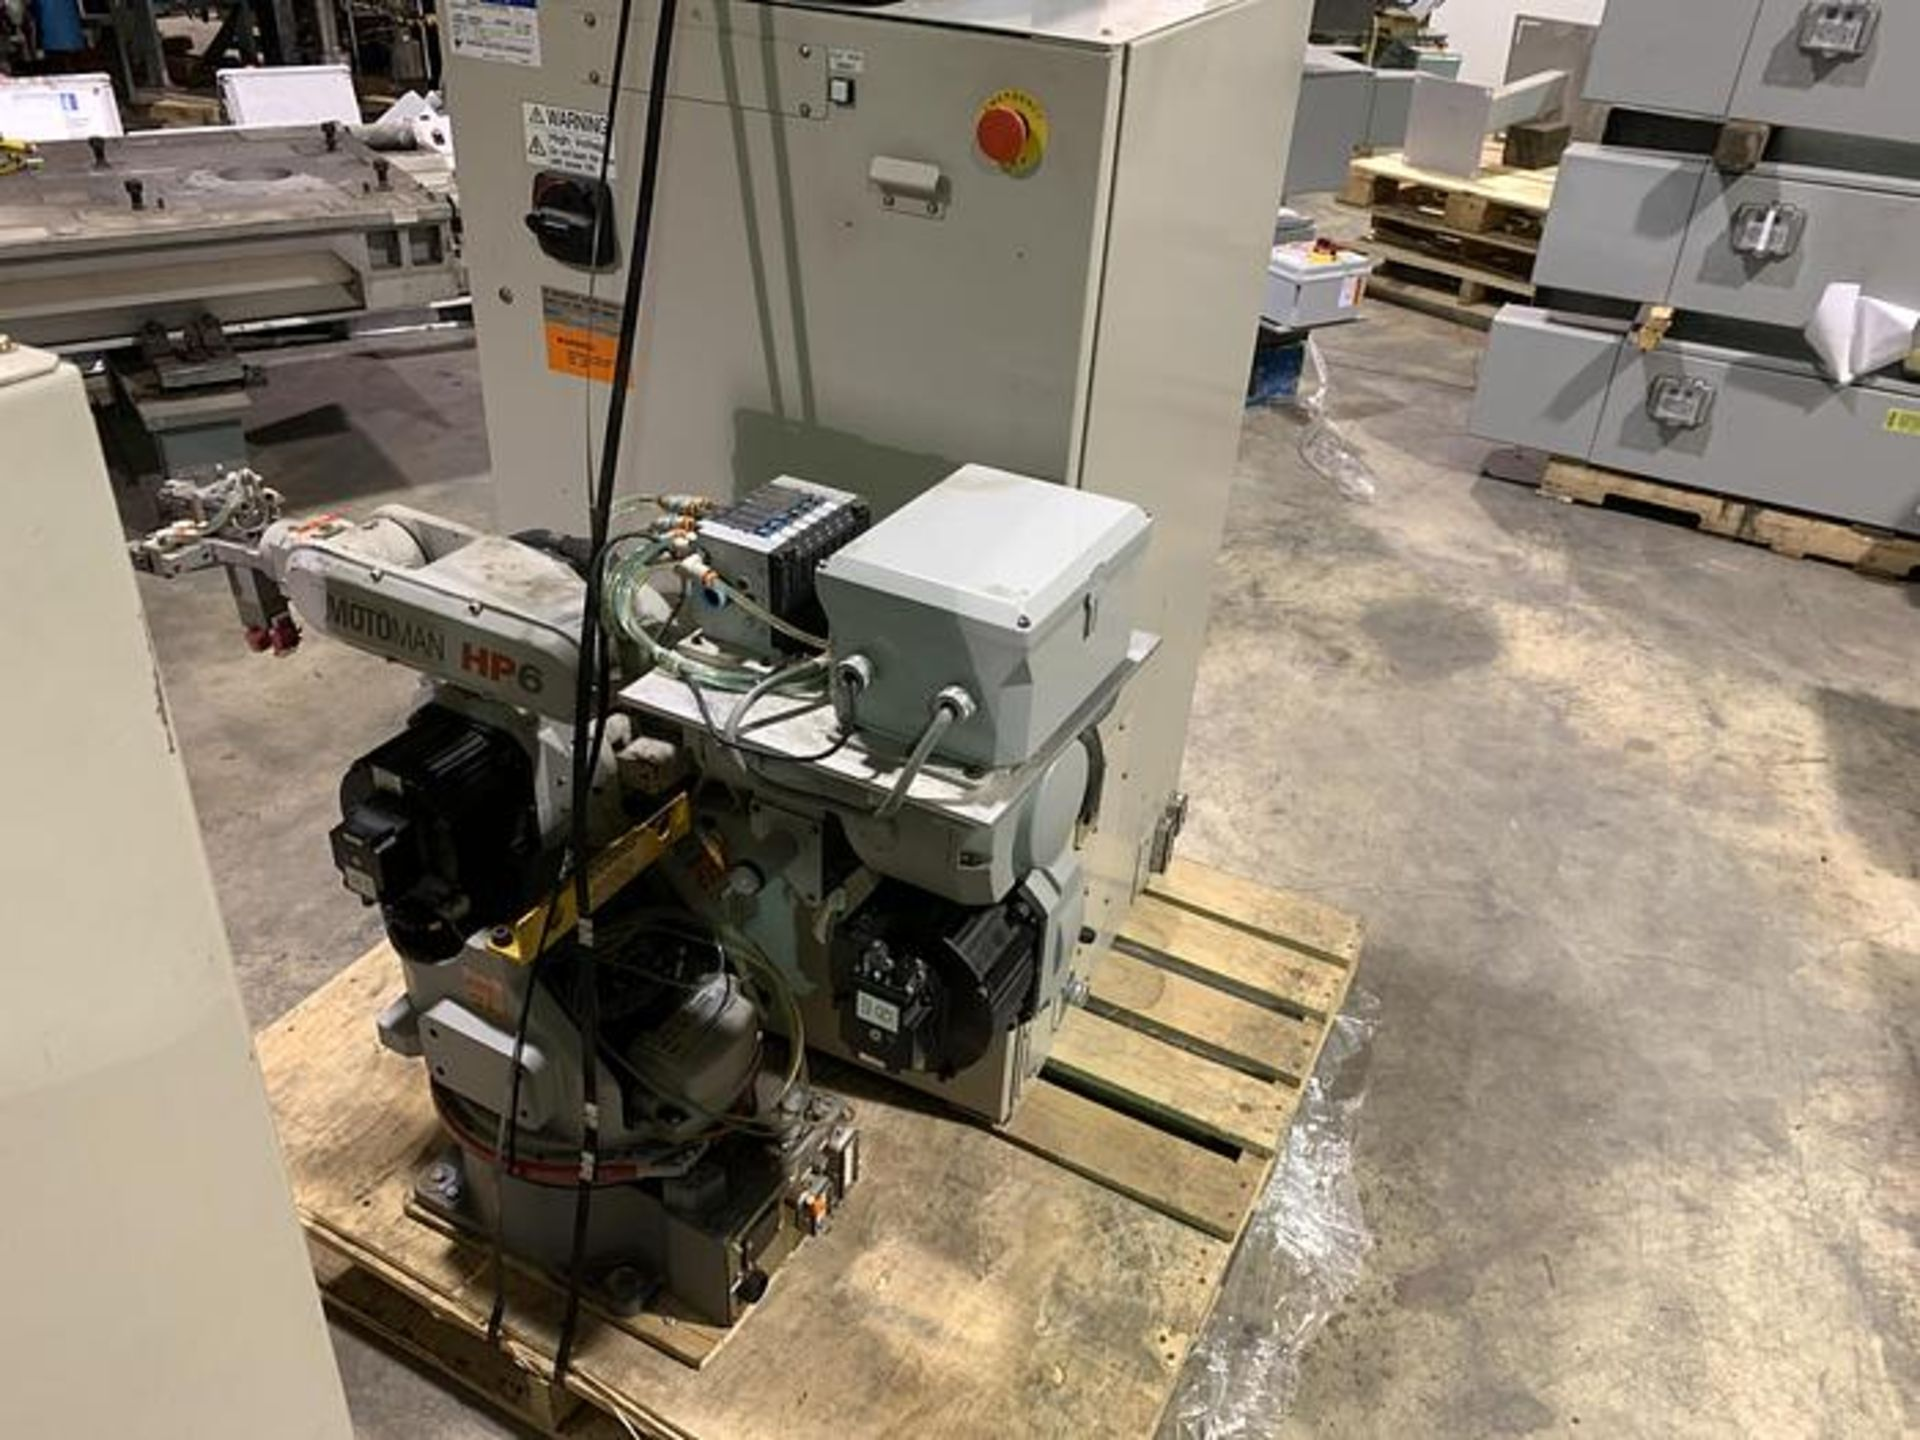 MOTOMAN ROBOT HP6 6KG X 1378MM, REACH NX00 CONTROLLER, CABLES & TEACH, SN ORDER NUMBER S46A61-1-2 - Image 3 of 5